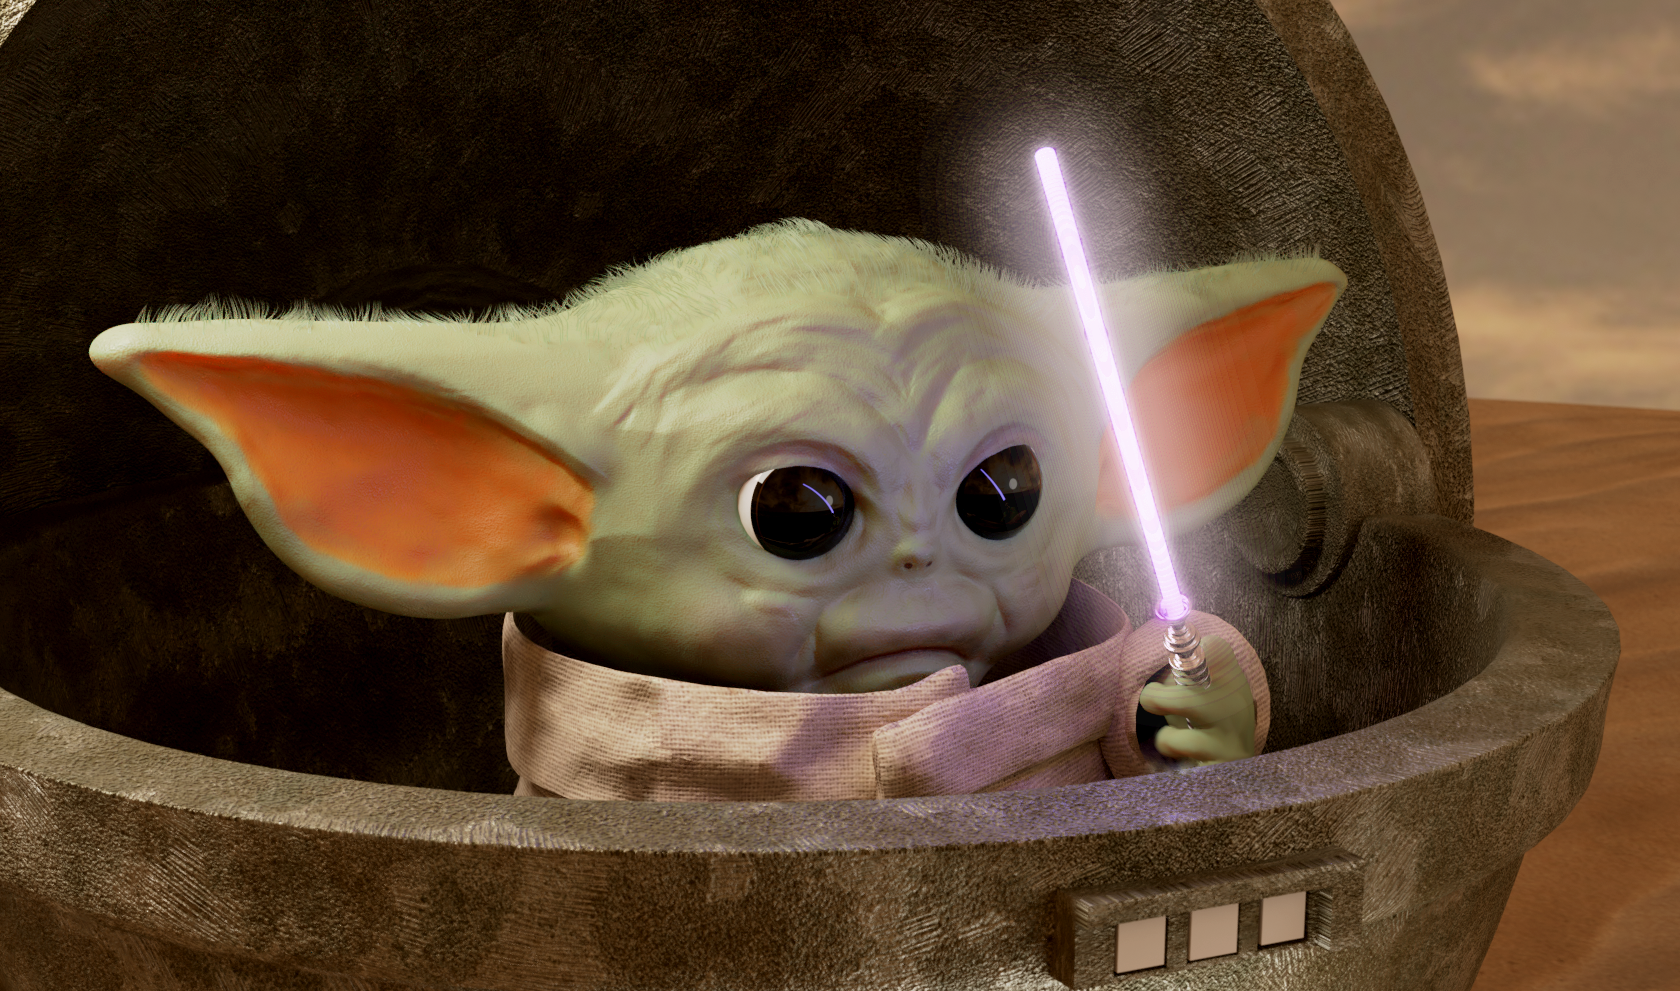 My Attempt At Baby Yoda Yoda Lightsaber Image Macro